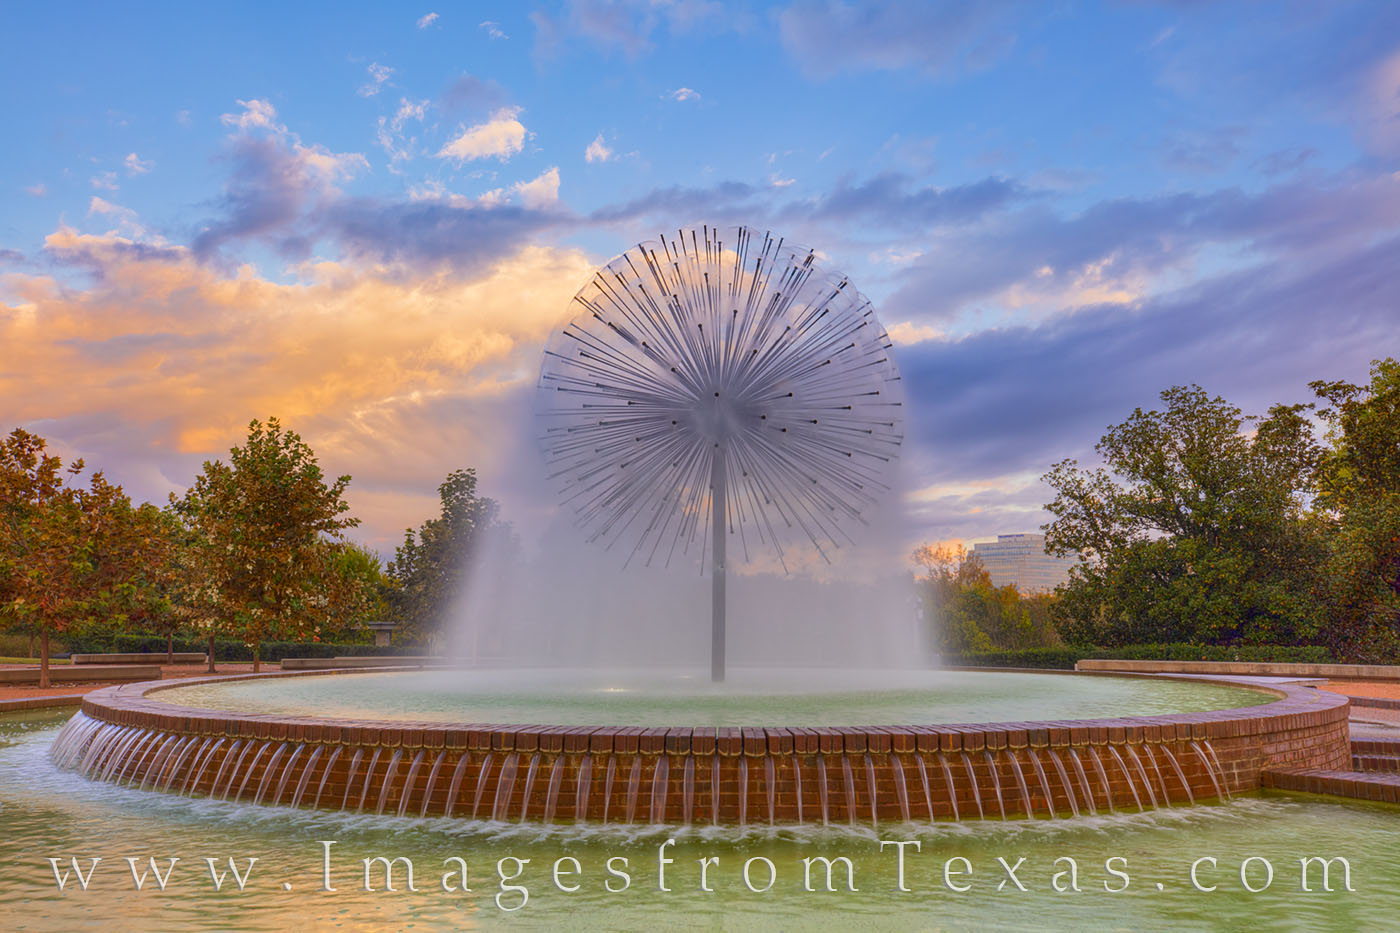 The Gus Wortham Memorial Fountain near Buffalo Bayou in Houston, Texas, was donated by the Wortham Foundation. It is found along...